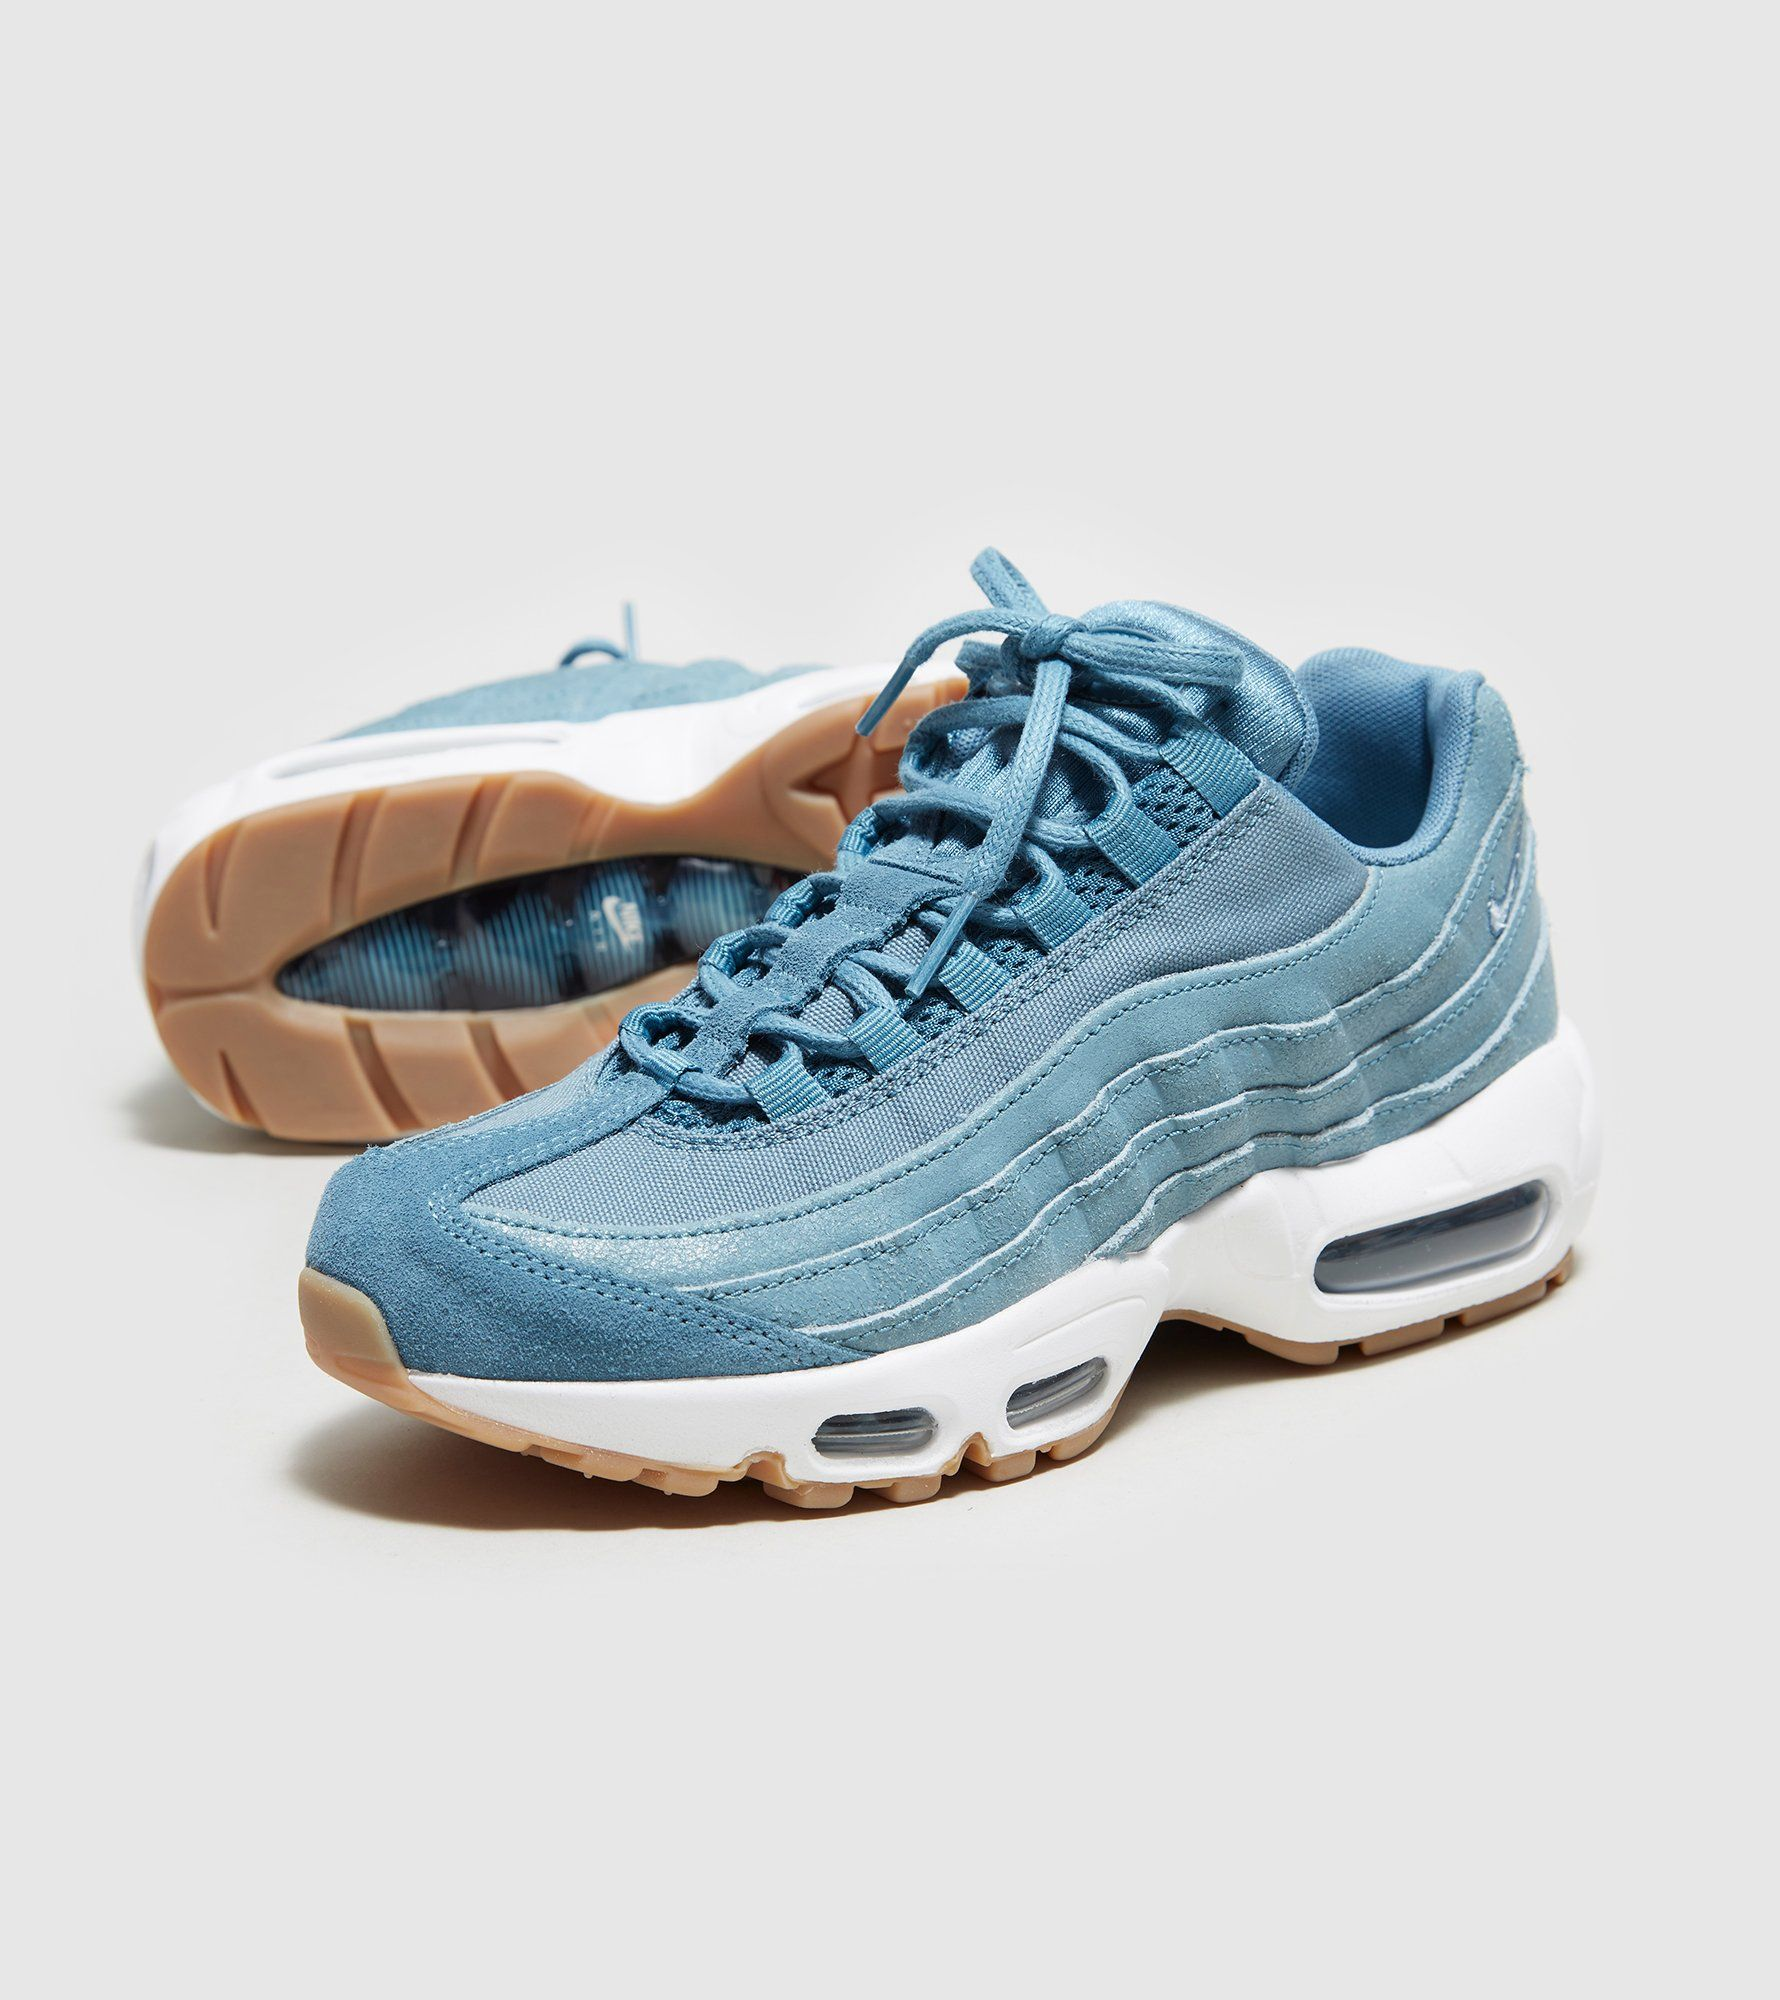 Nike Air Max 95 Womens : Nike Shoes and Sneakers on Sale ...